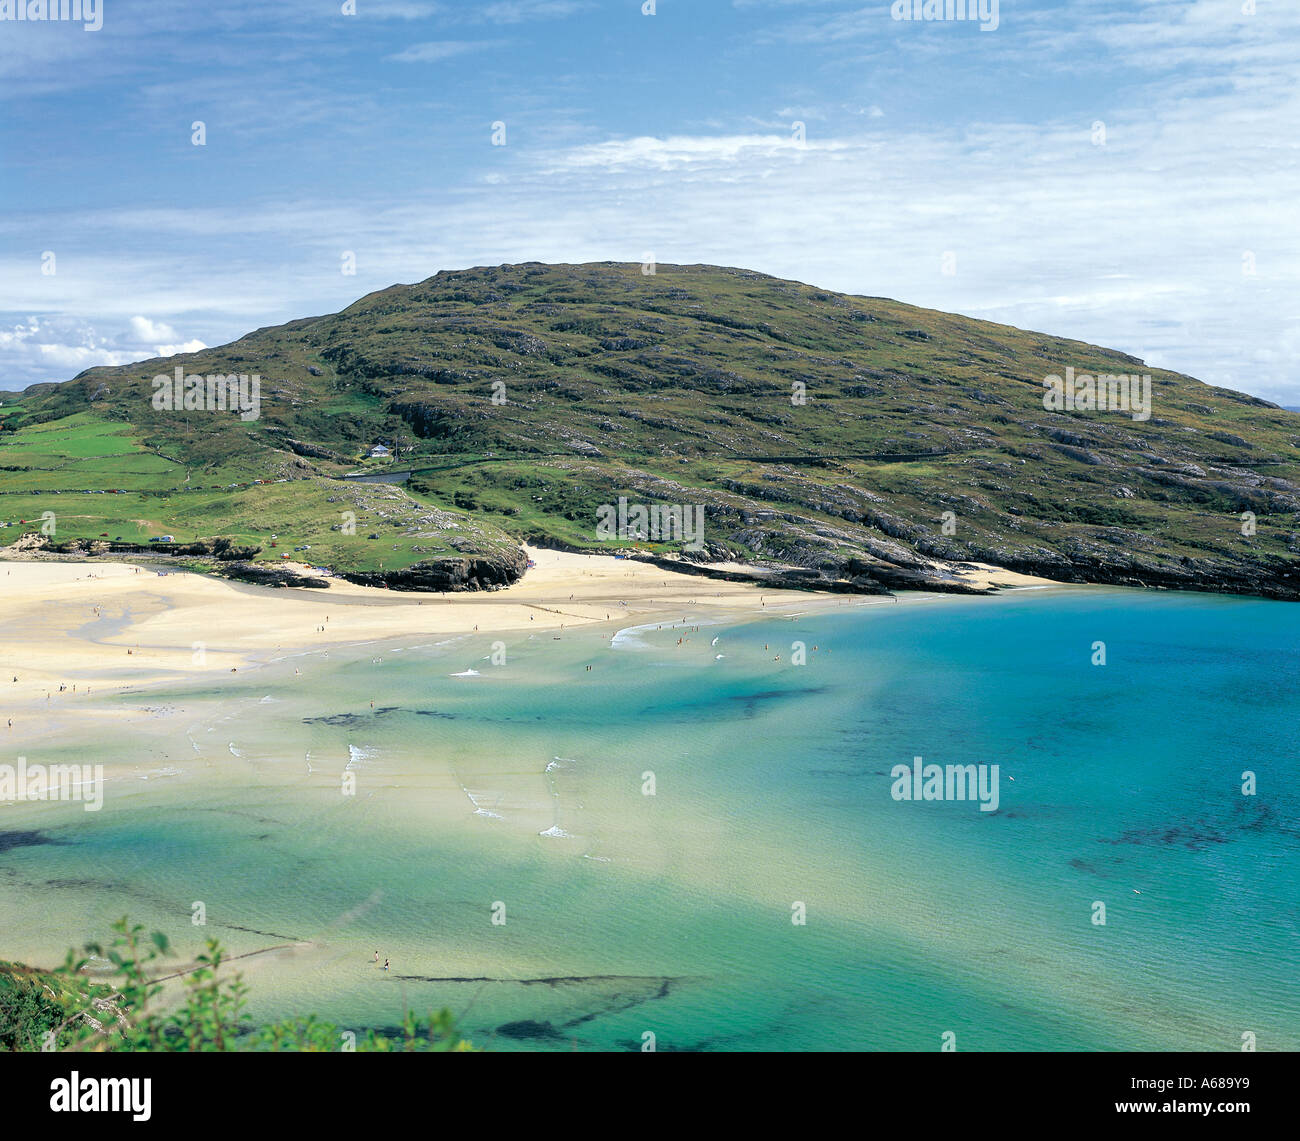 barley cove beach, mizen head, county cork ireland, tropical looking sandy beach with torquise  colored waters, beauty in nature - Stock Image